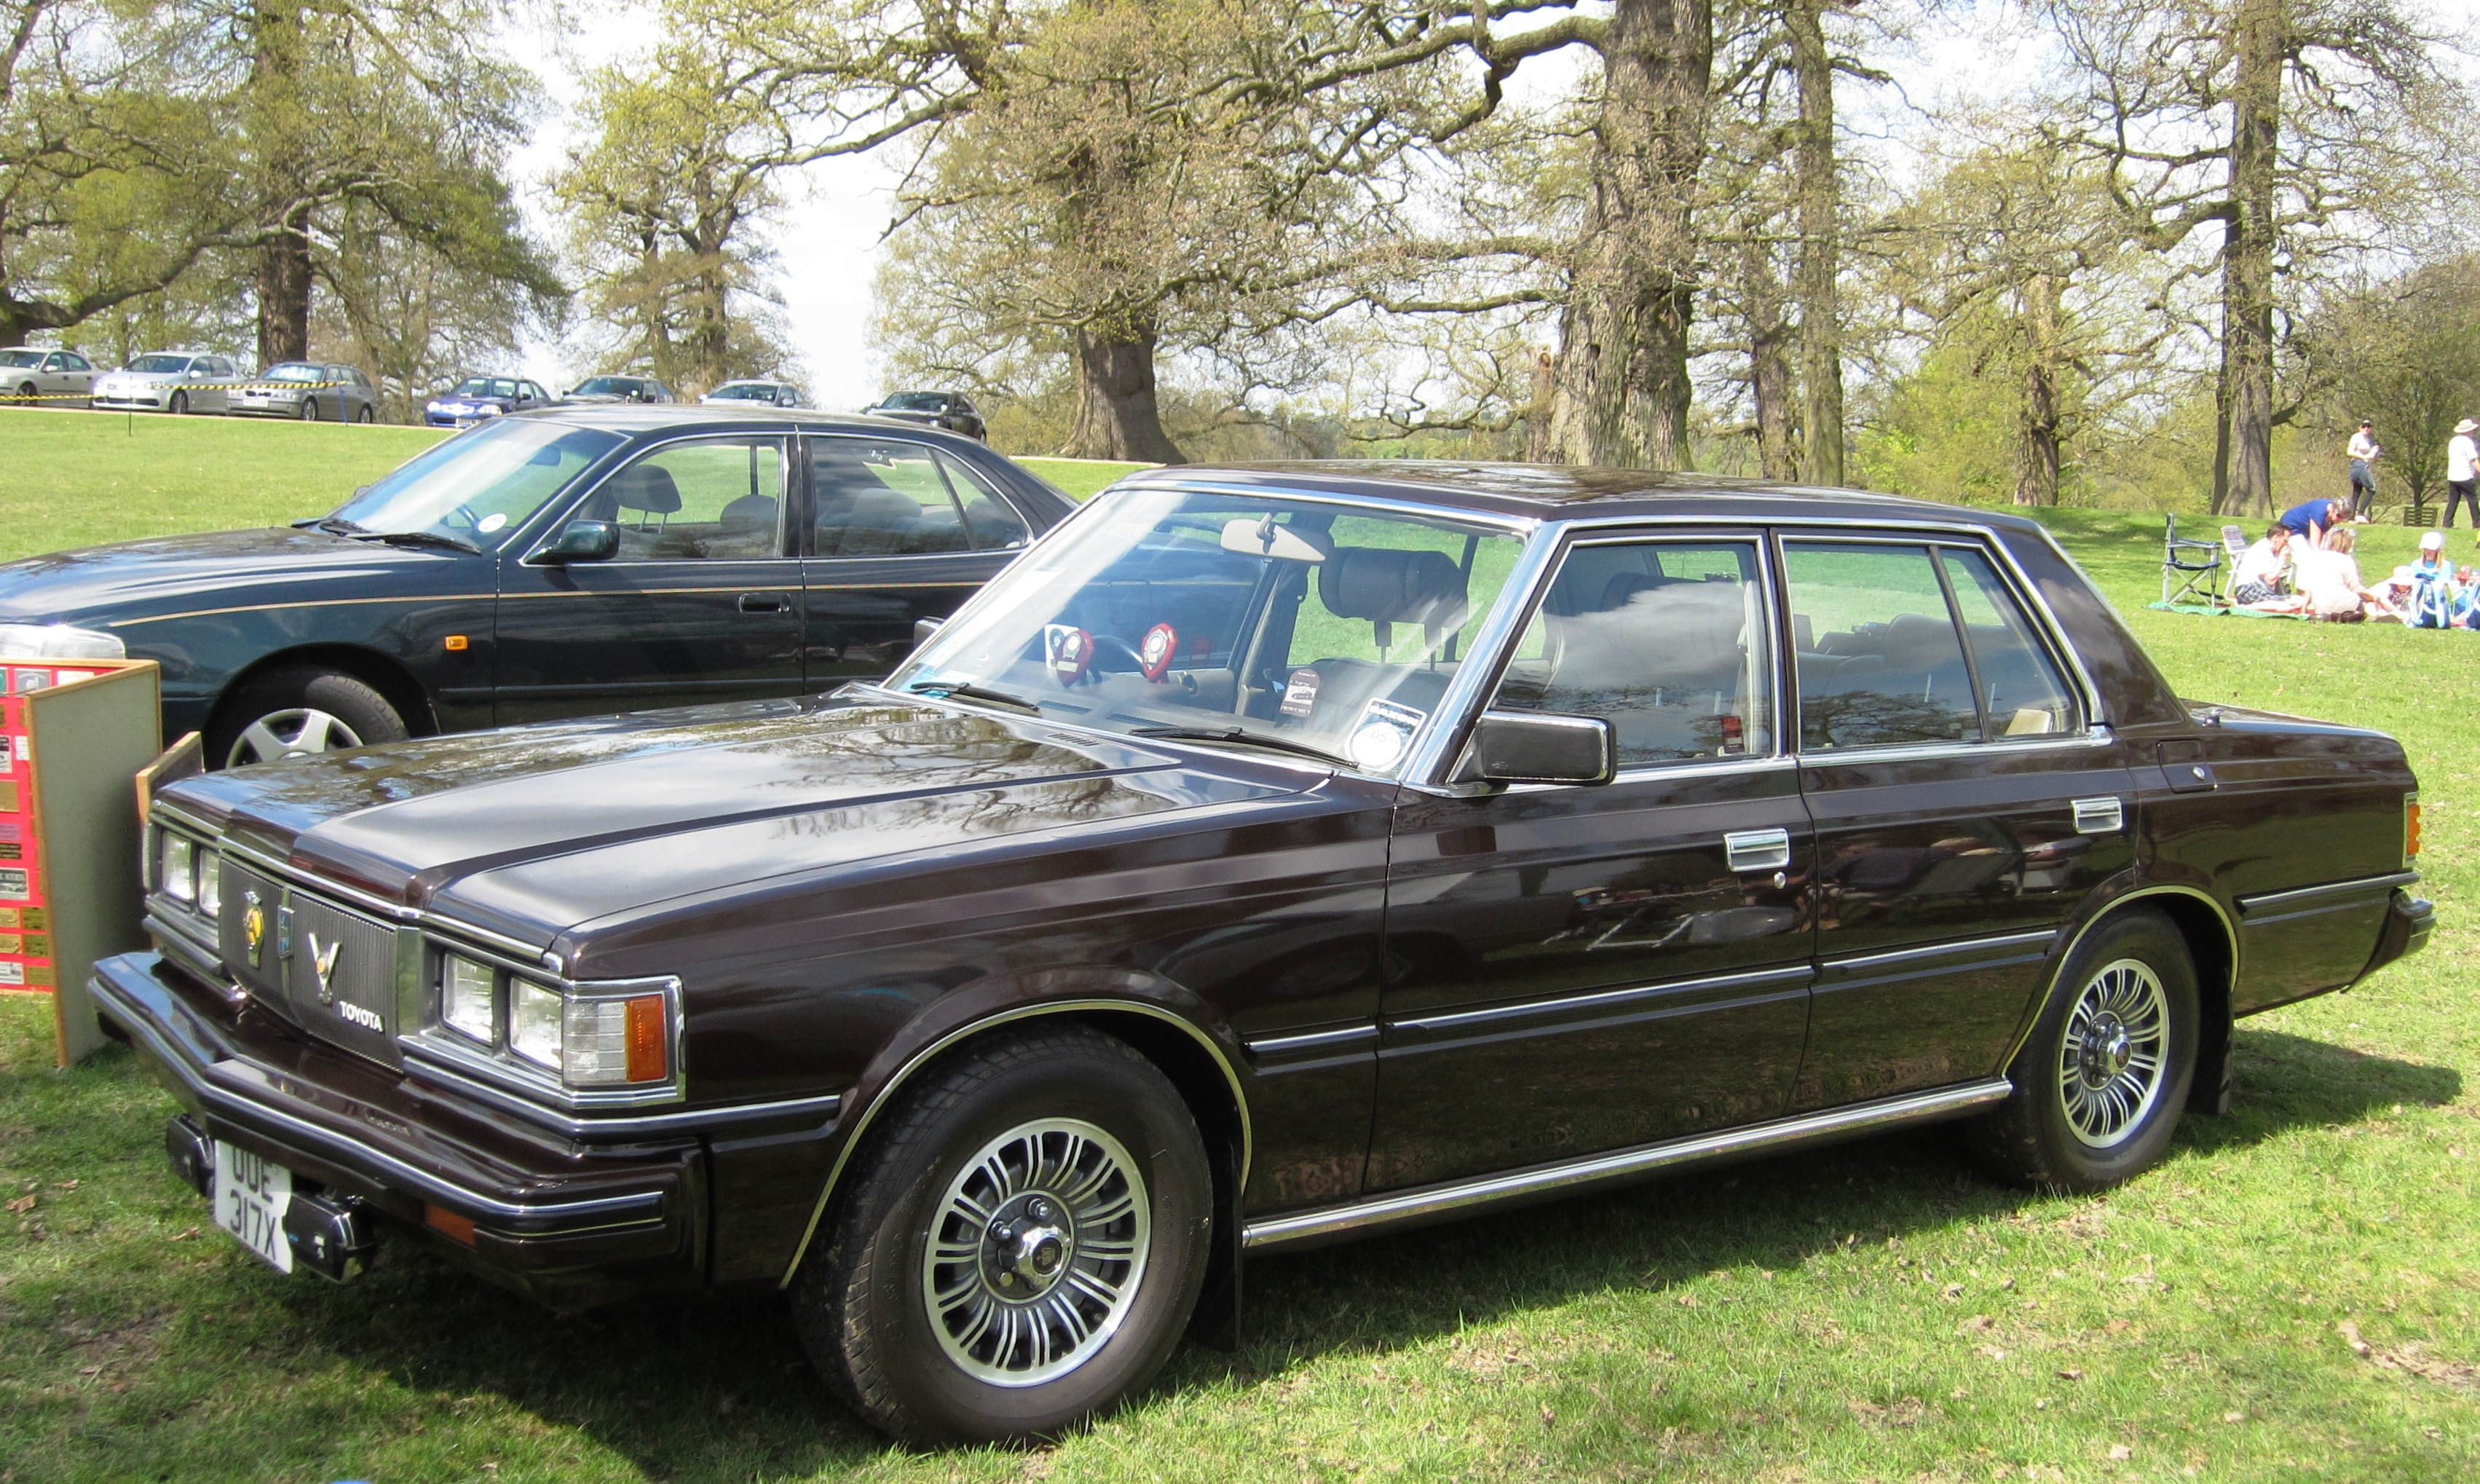 Build A Toyota >> File:Toyota Crown S110 first registered in UK April 1982 ...